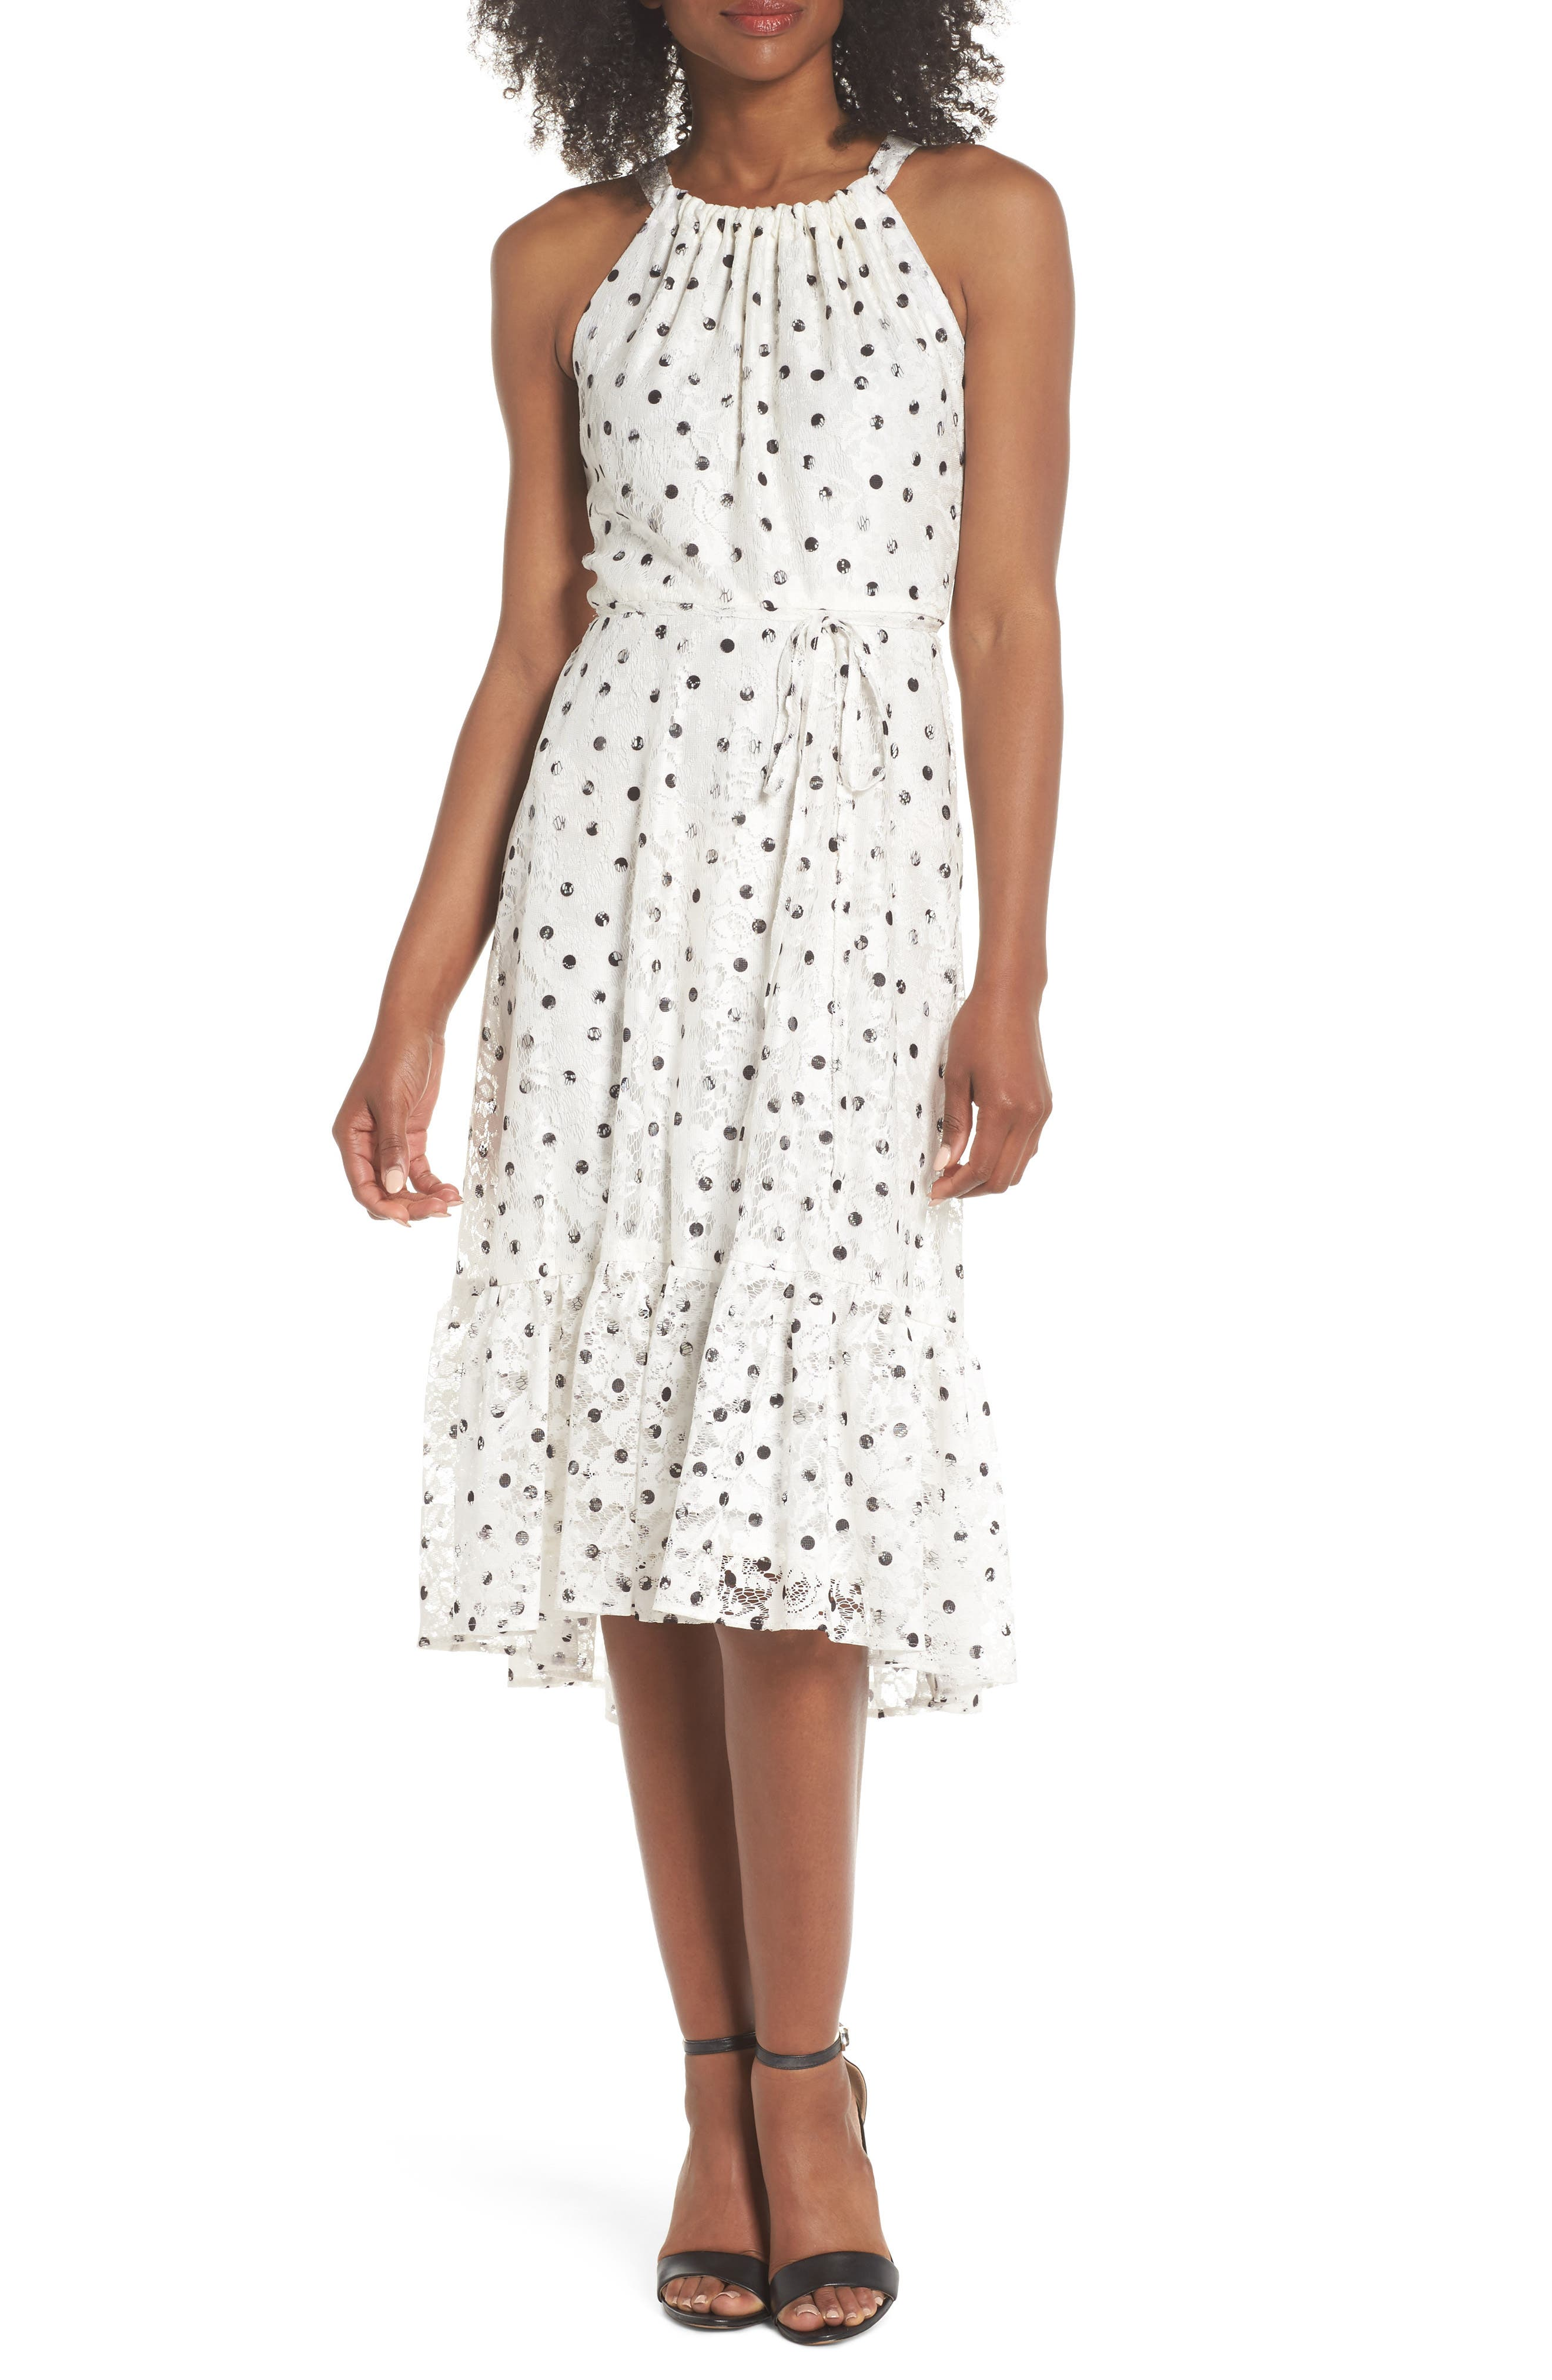 Gabby Skye Polka Dot Lace Midi Dress